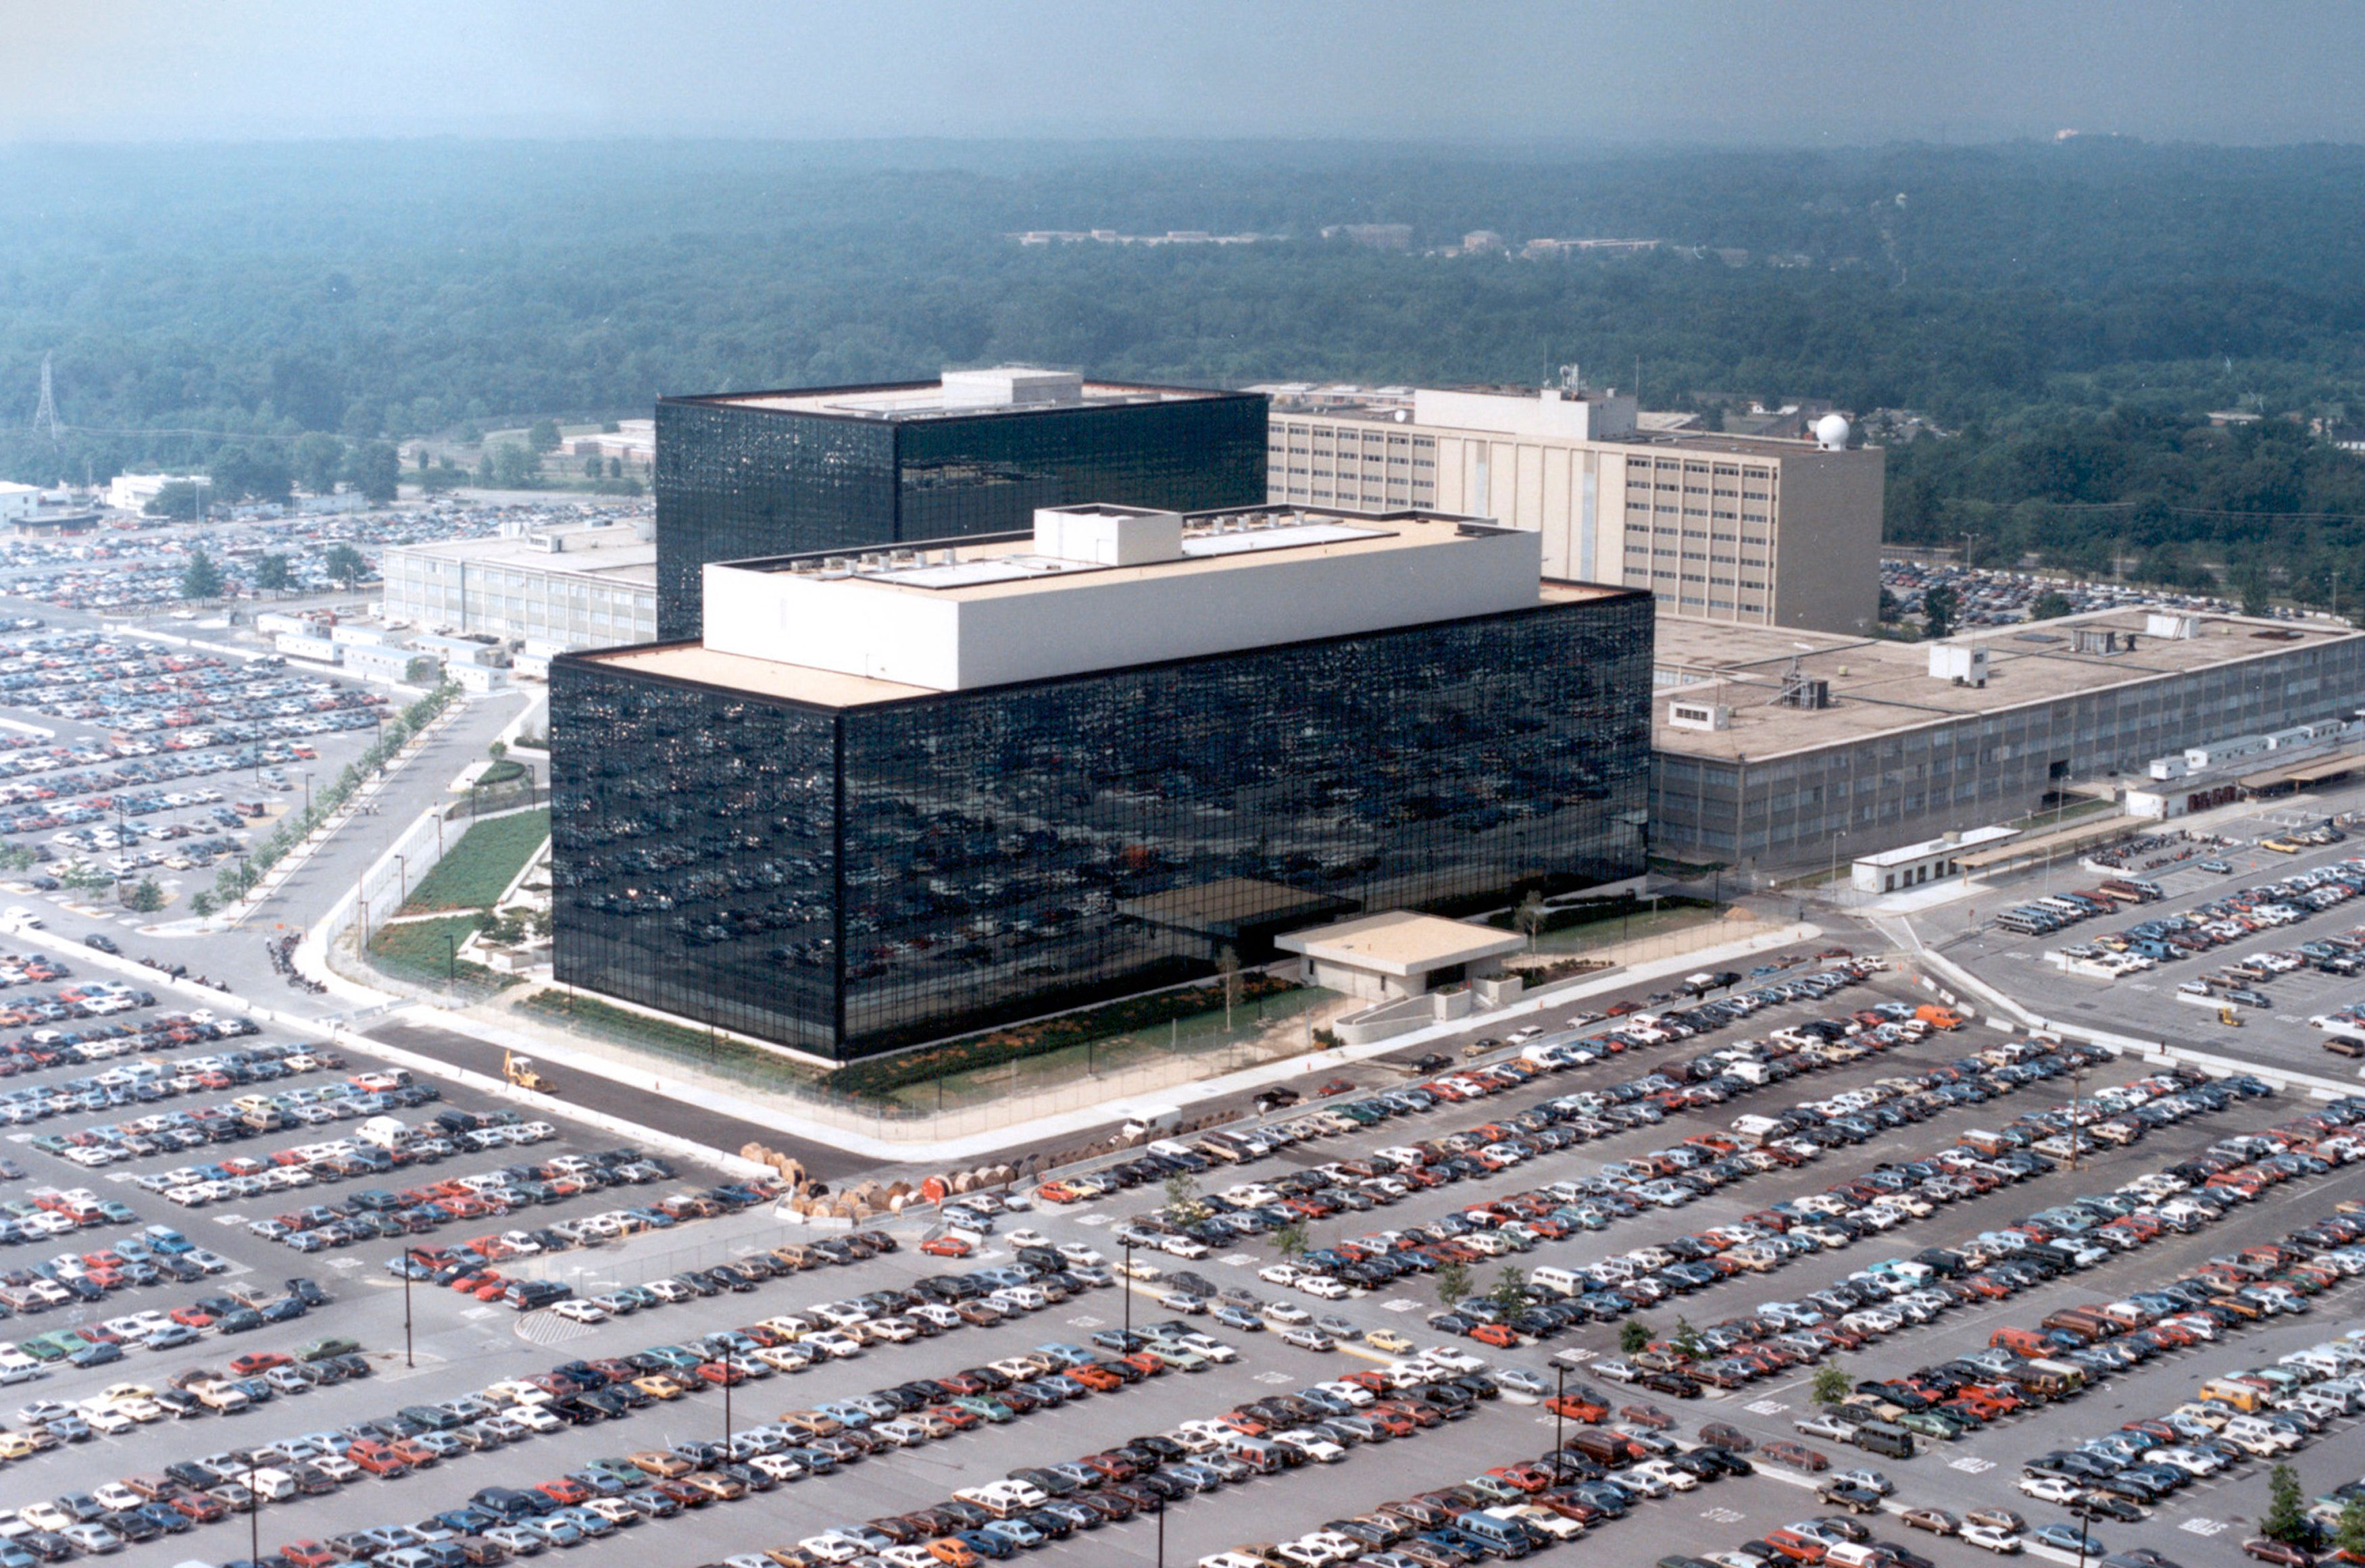 The National Security Agency, headquartered in Fort Meade, Maryland, determined that six people had printed the lea